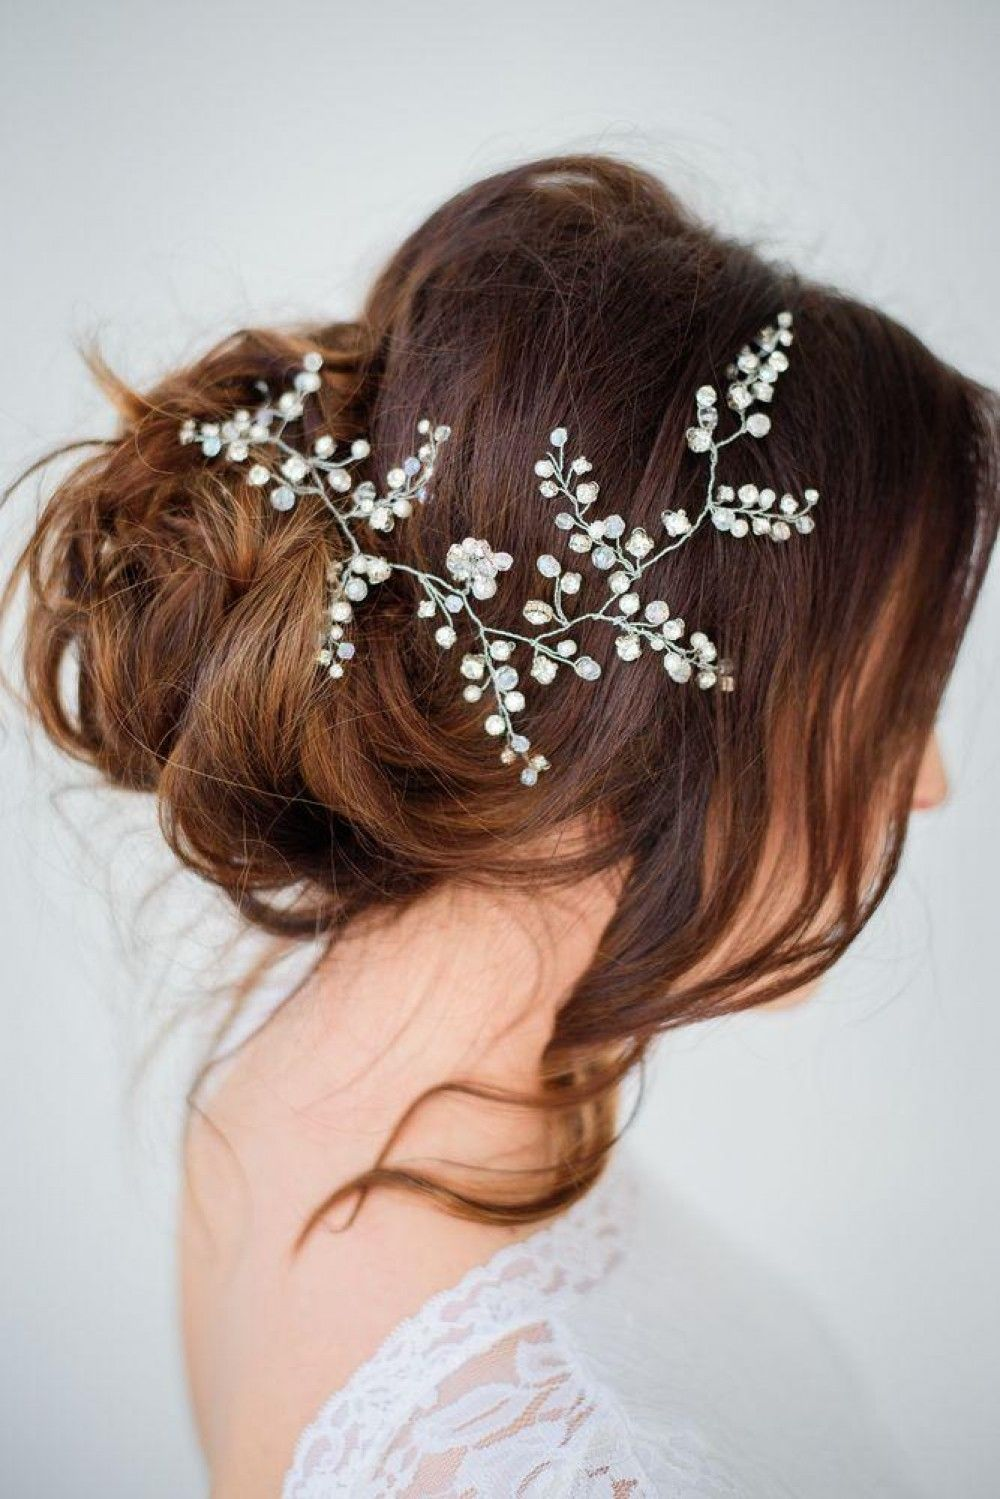 Hairstyle with delicate flowers at the back